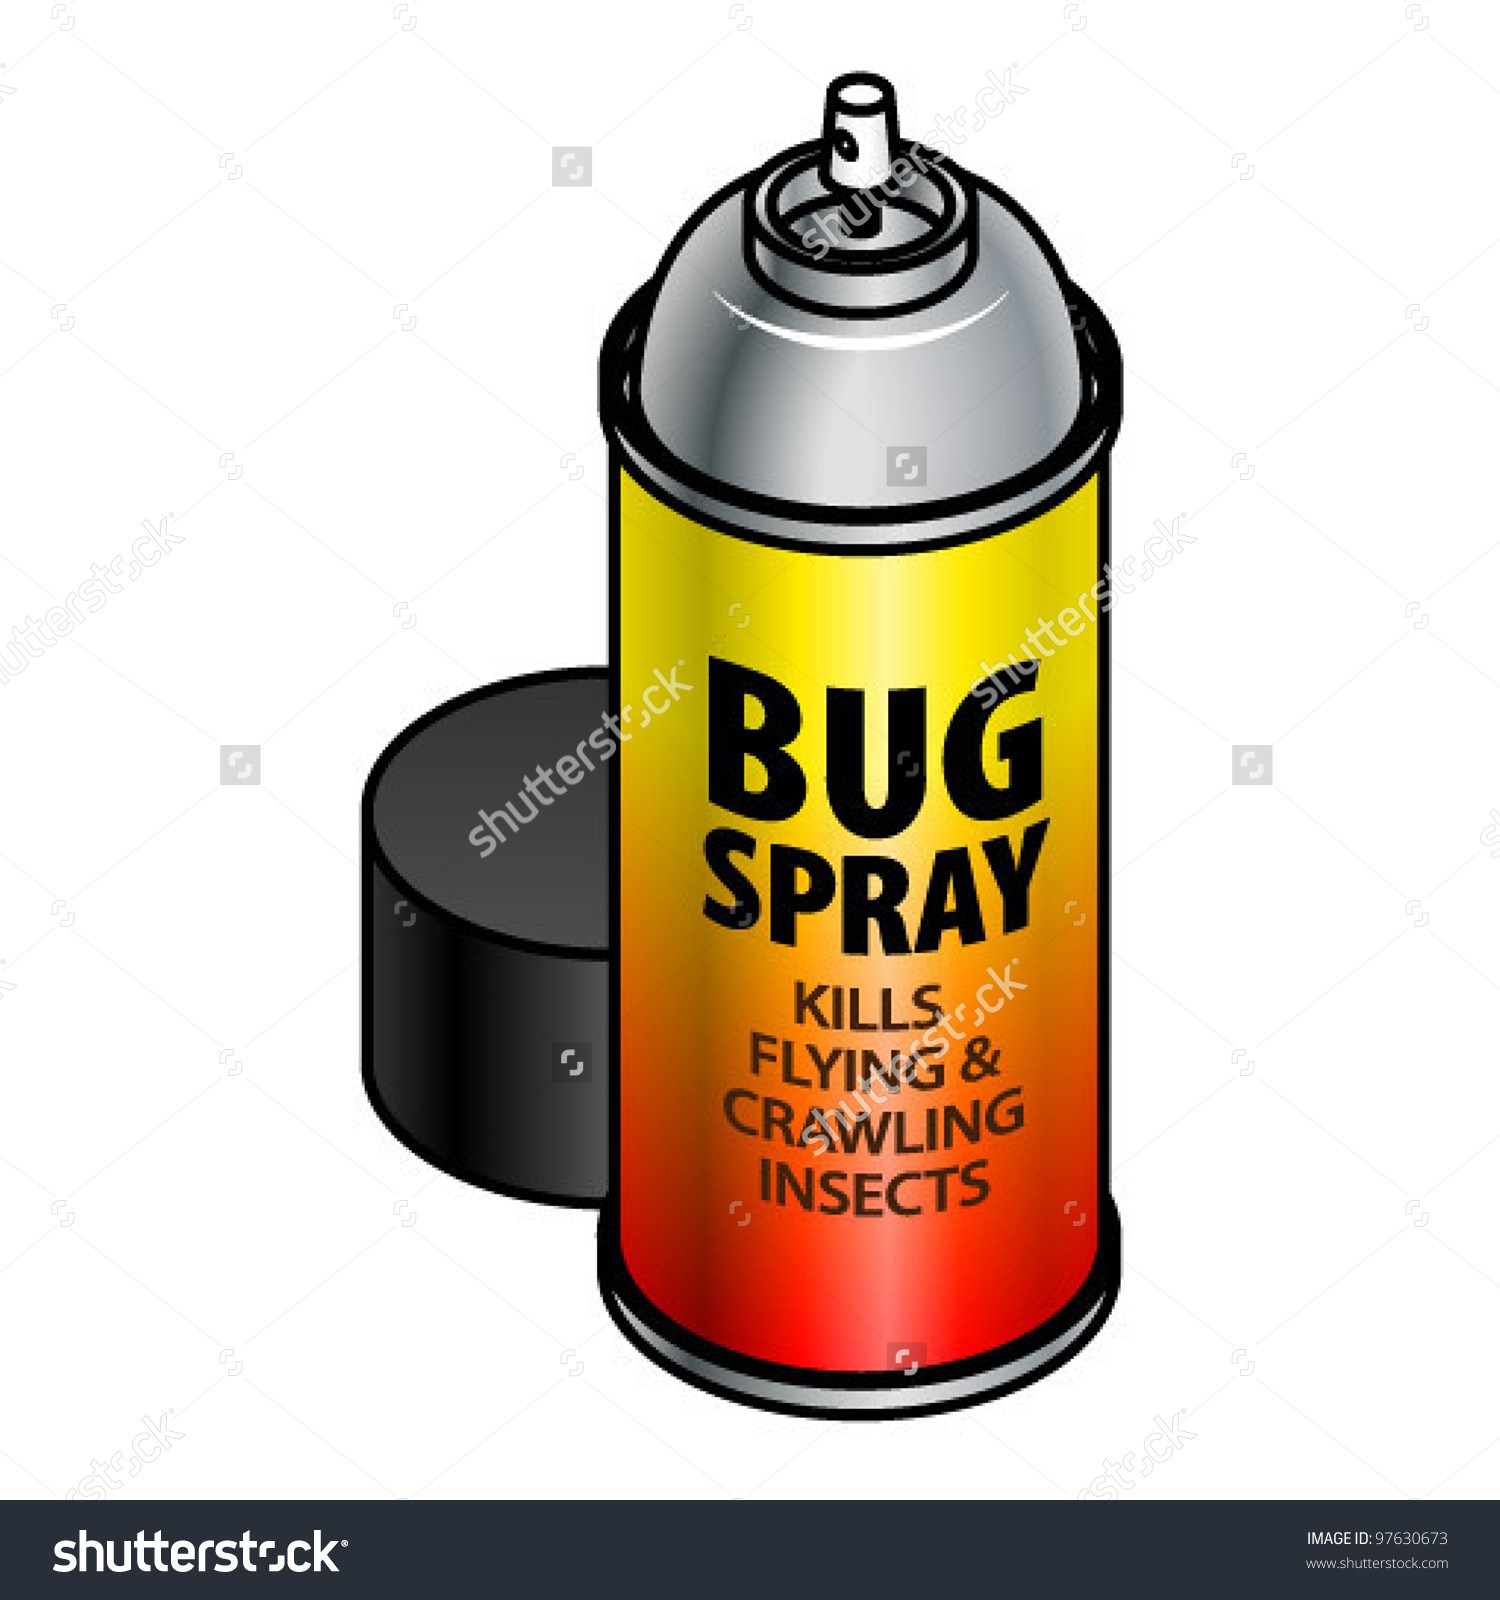 Bug spray clipart 7 » Clipart Portal.